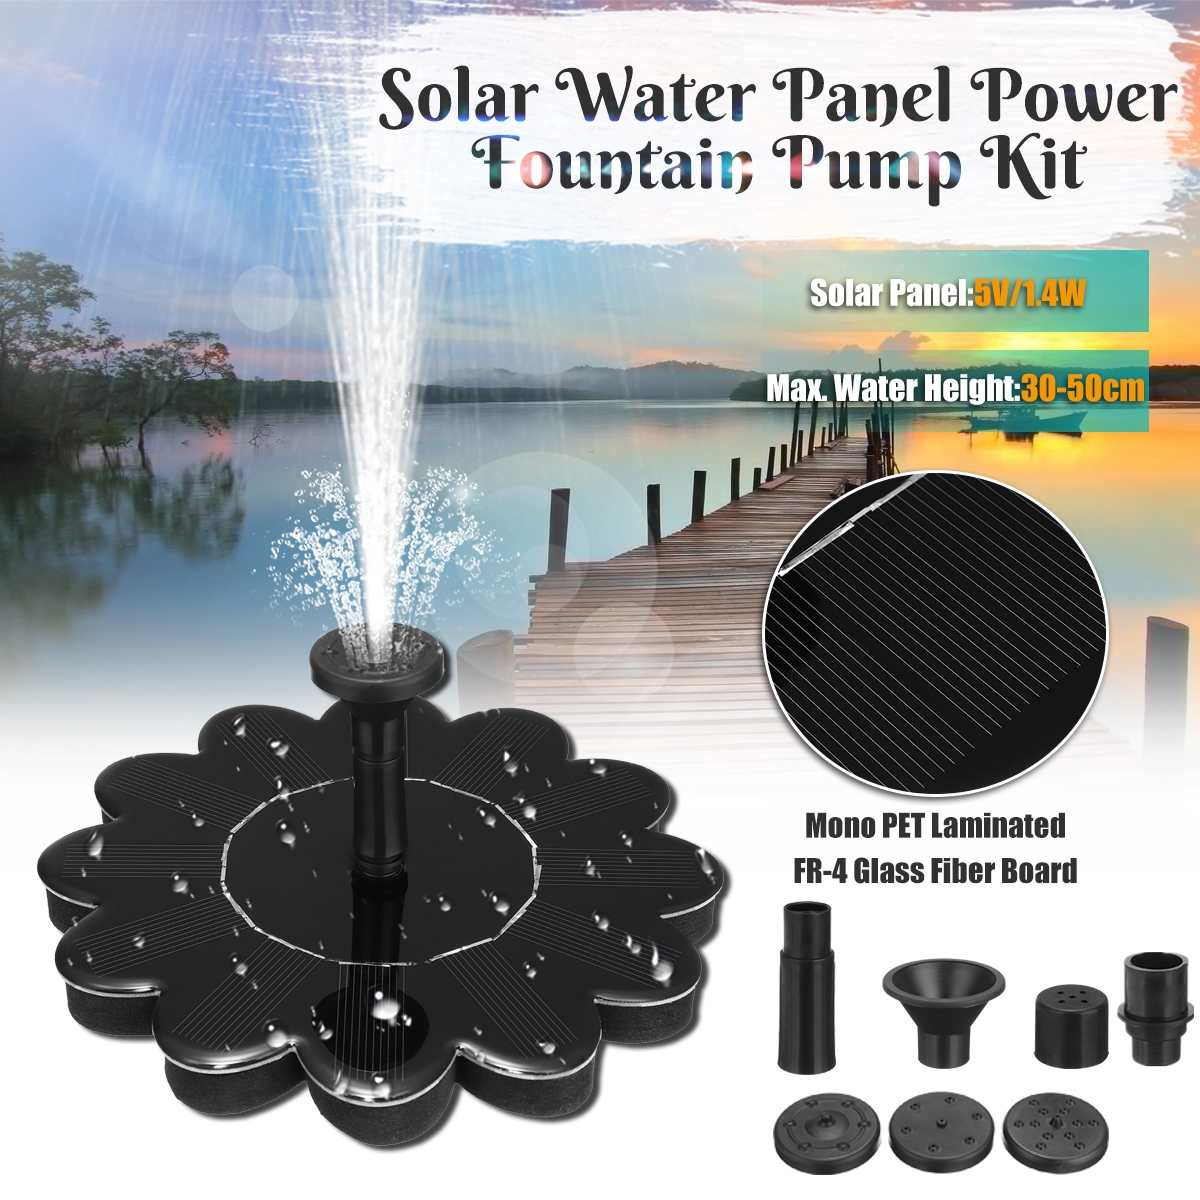 Brushless Pump Submersible Solar Water Pump 5V 1.4W Mono Solar Panel Outdoor Mini Solar Water Fountain Pumps For GardenBrushless Pump Submersible Solar Water Pump 5V 1.4W Mono Solar Panel Outdoor Mini Solar Water Fountain Pumps For Garden